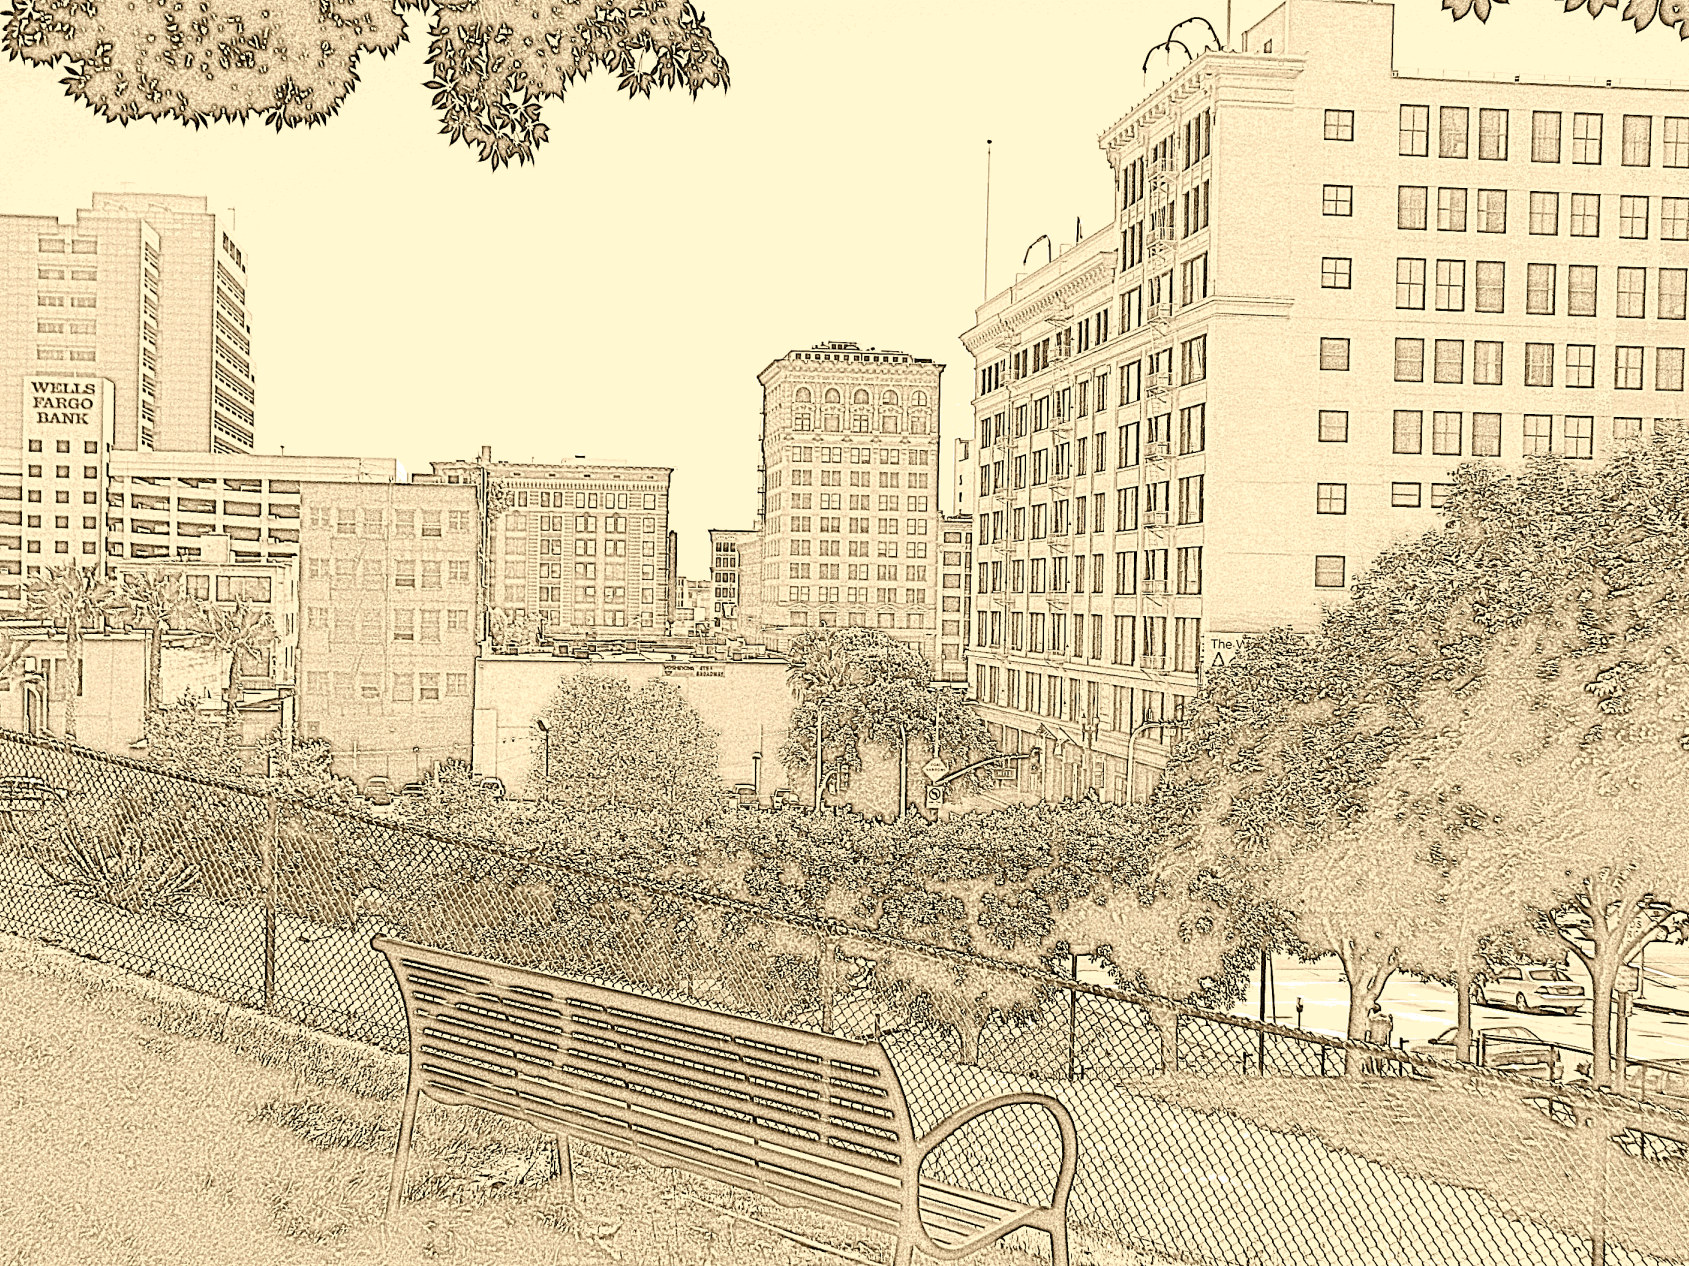 500 days of summer city drawing for Architecture drawing 500 days of summer